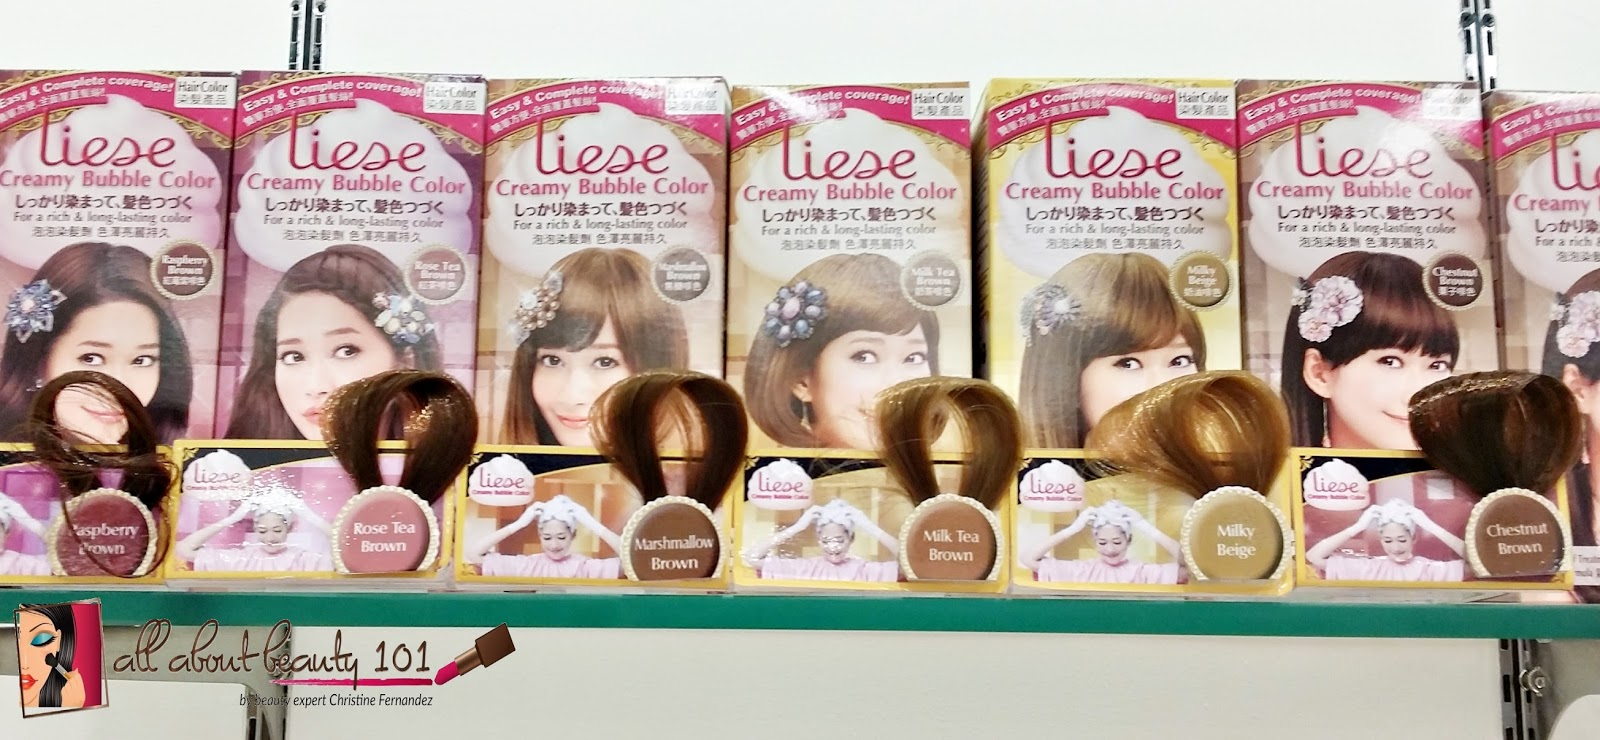 Liese Creamy Bubble Color Milk Tea Brown All About